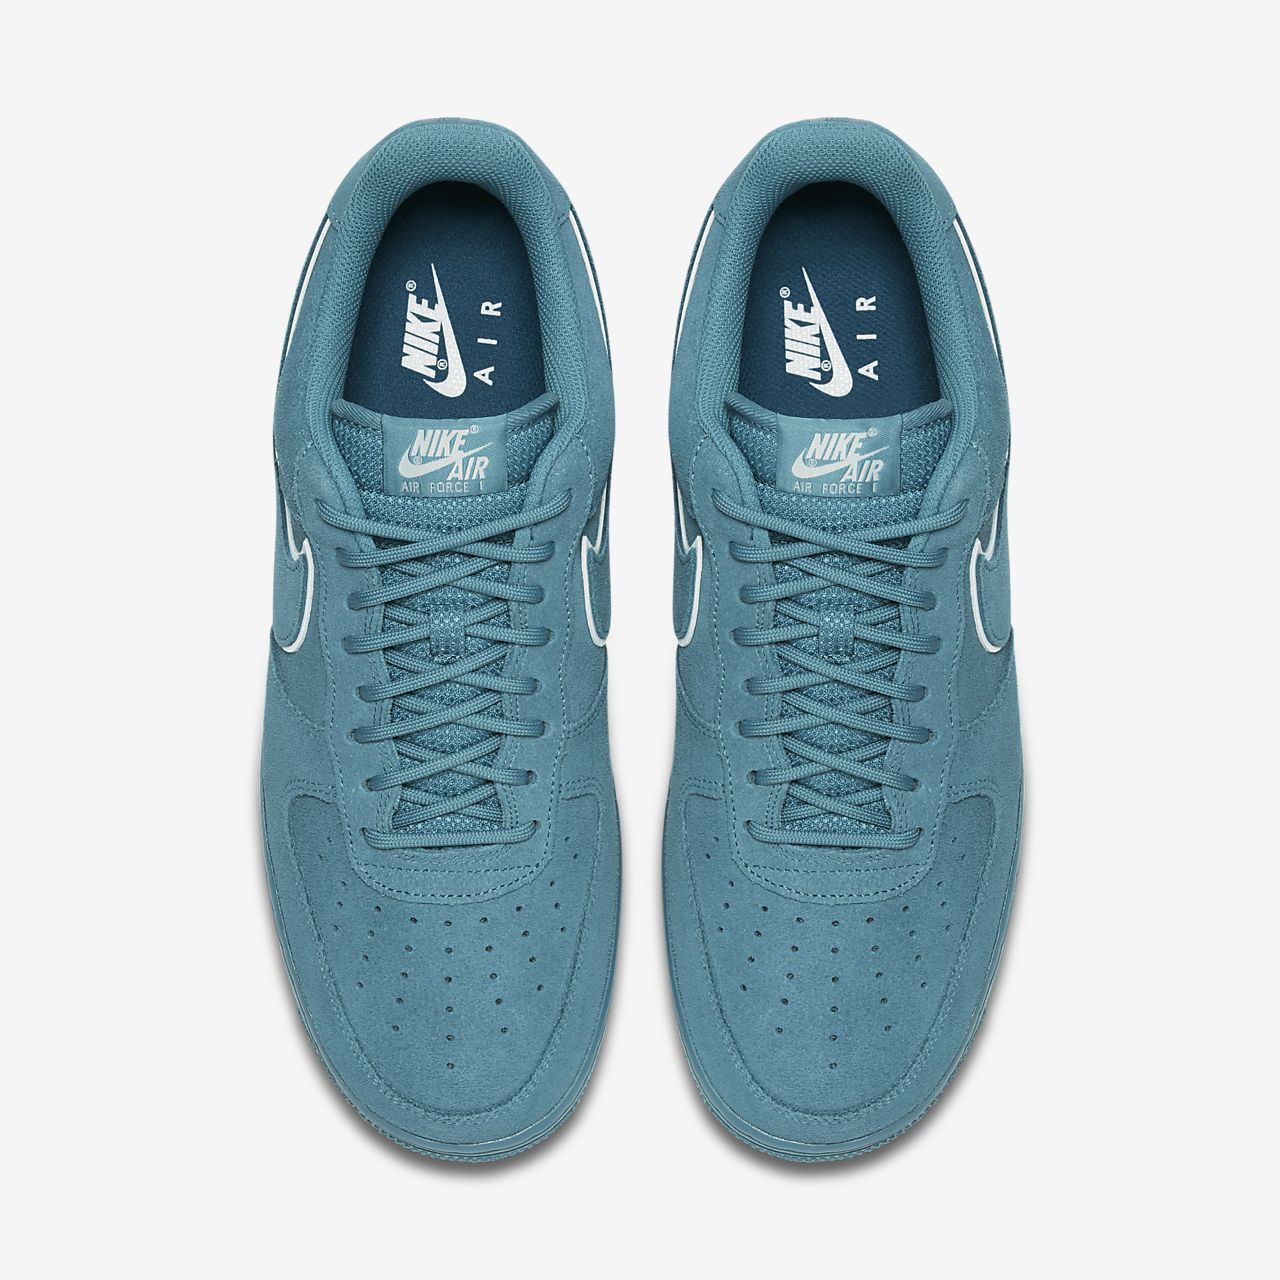 New York b2cfd ab5c0 Chaussure 07 Air Force Homme Pour Nike Hfxw1i0qd Lv8 1 dsBhxtQrC